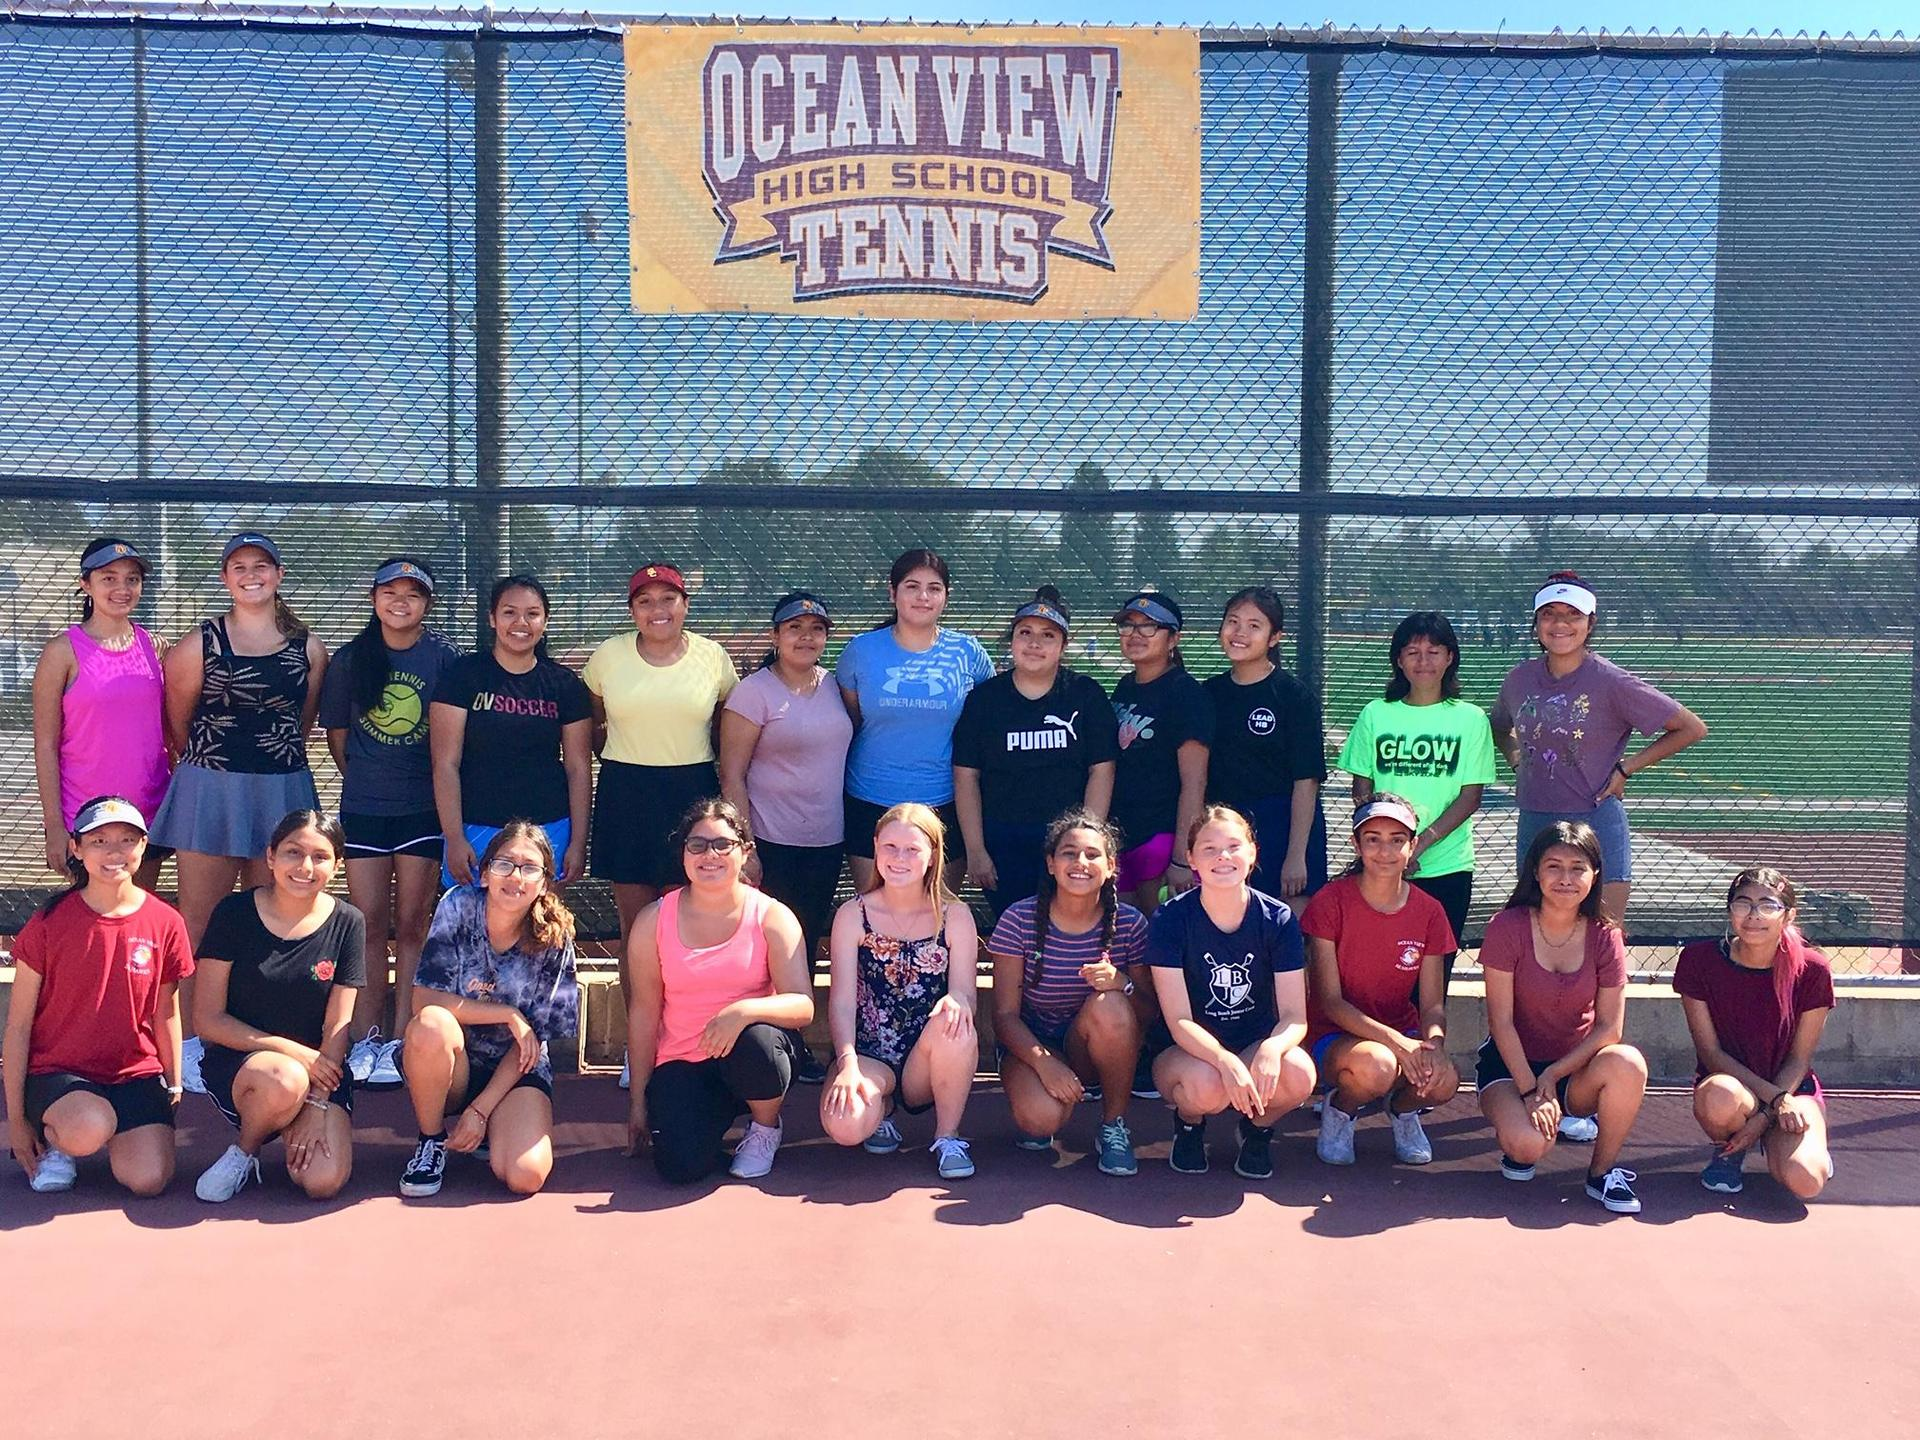 Girls' Tennis Team